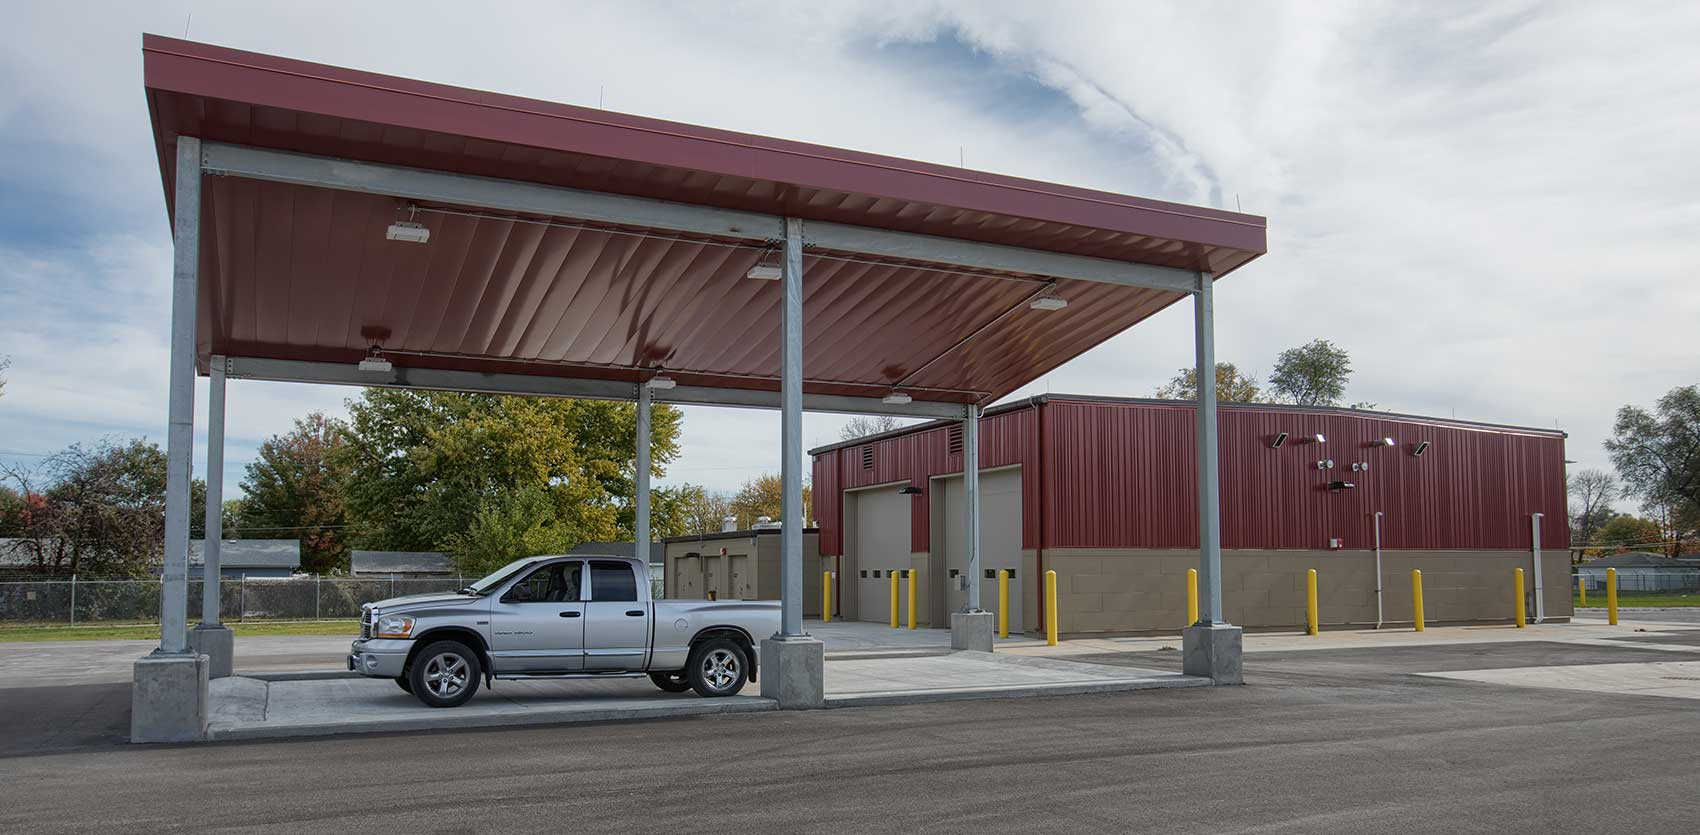 Council_Bluffs_Army Reserve Center Maintenance Facility